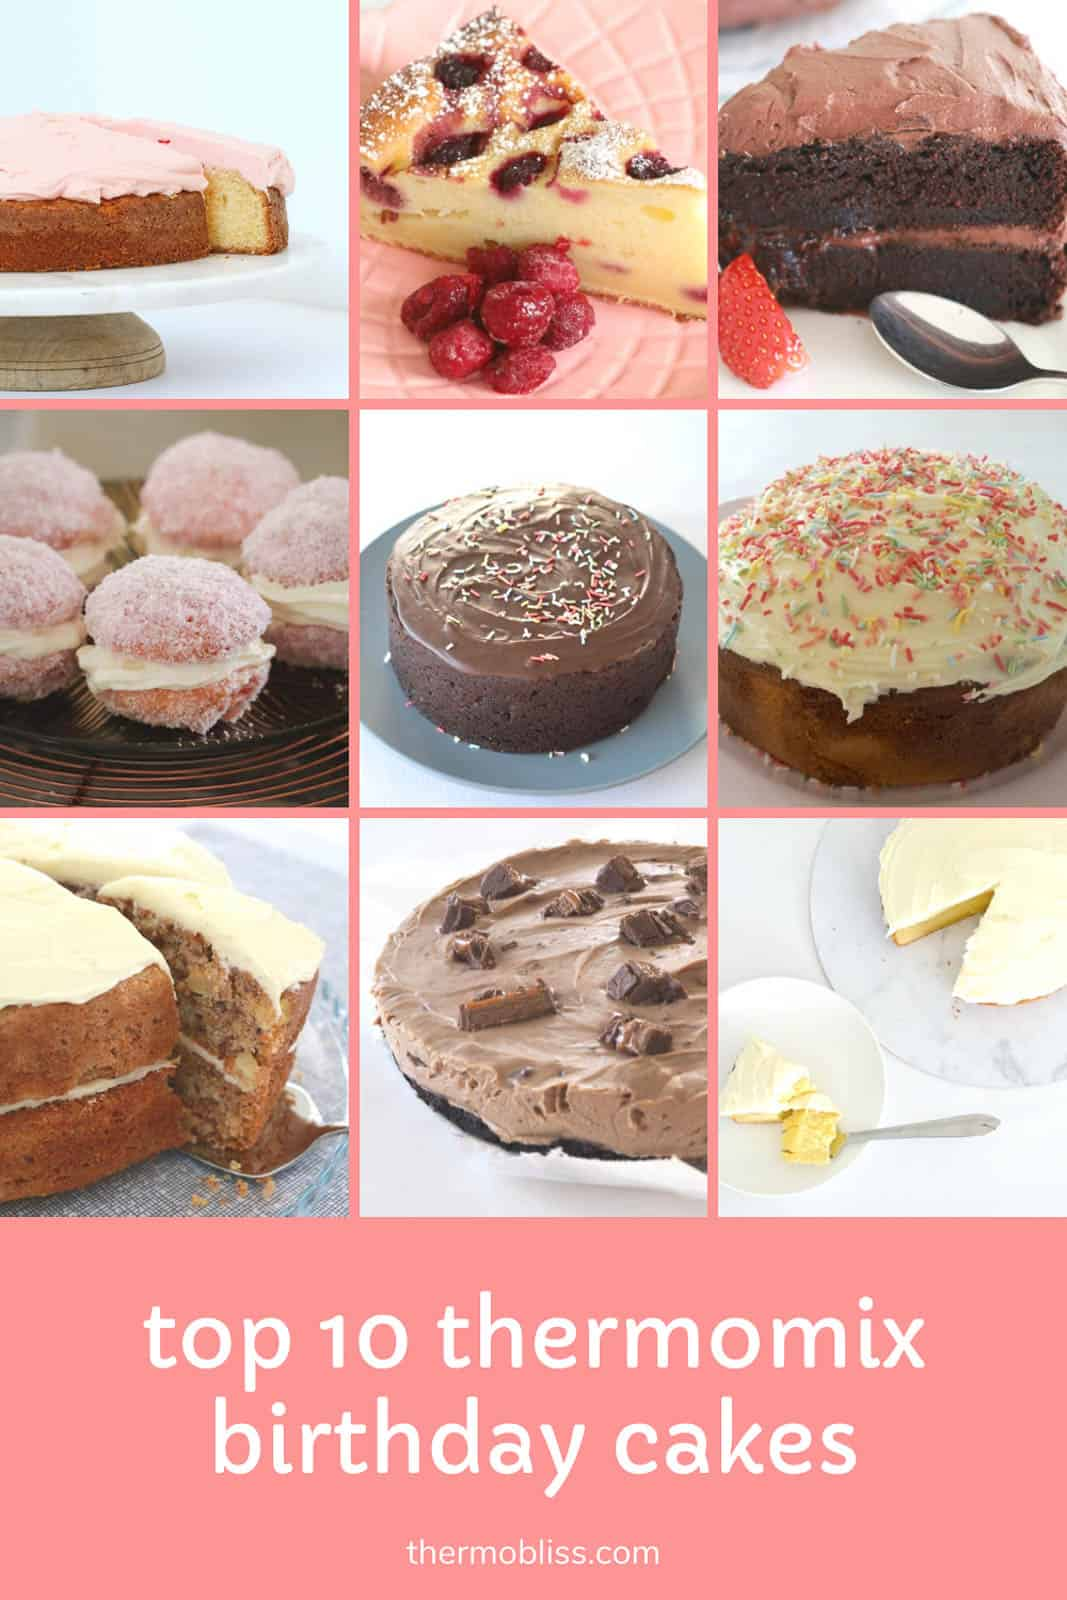 Images of 9 birthday cakes that have been made in a Thermomix.